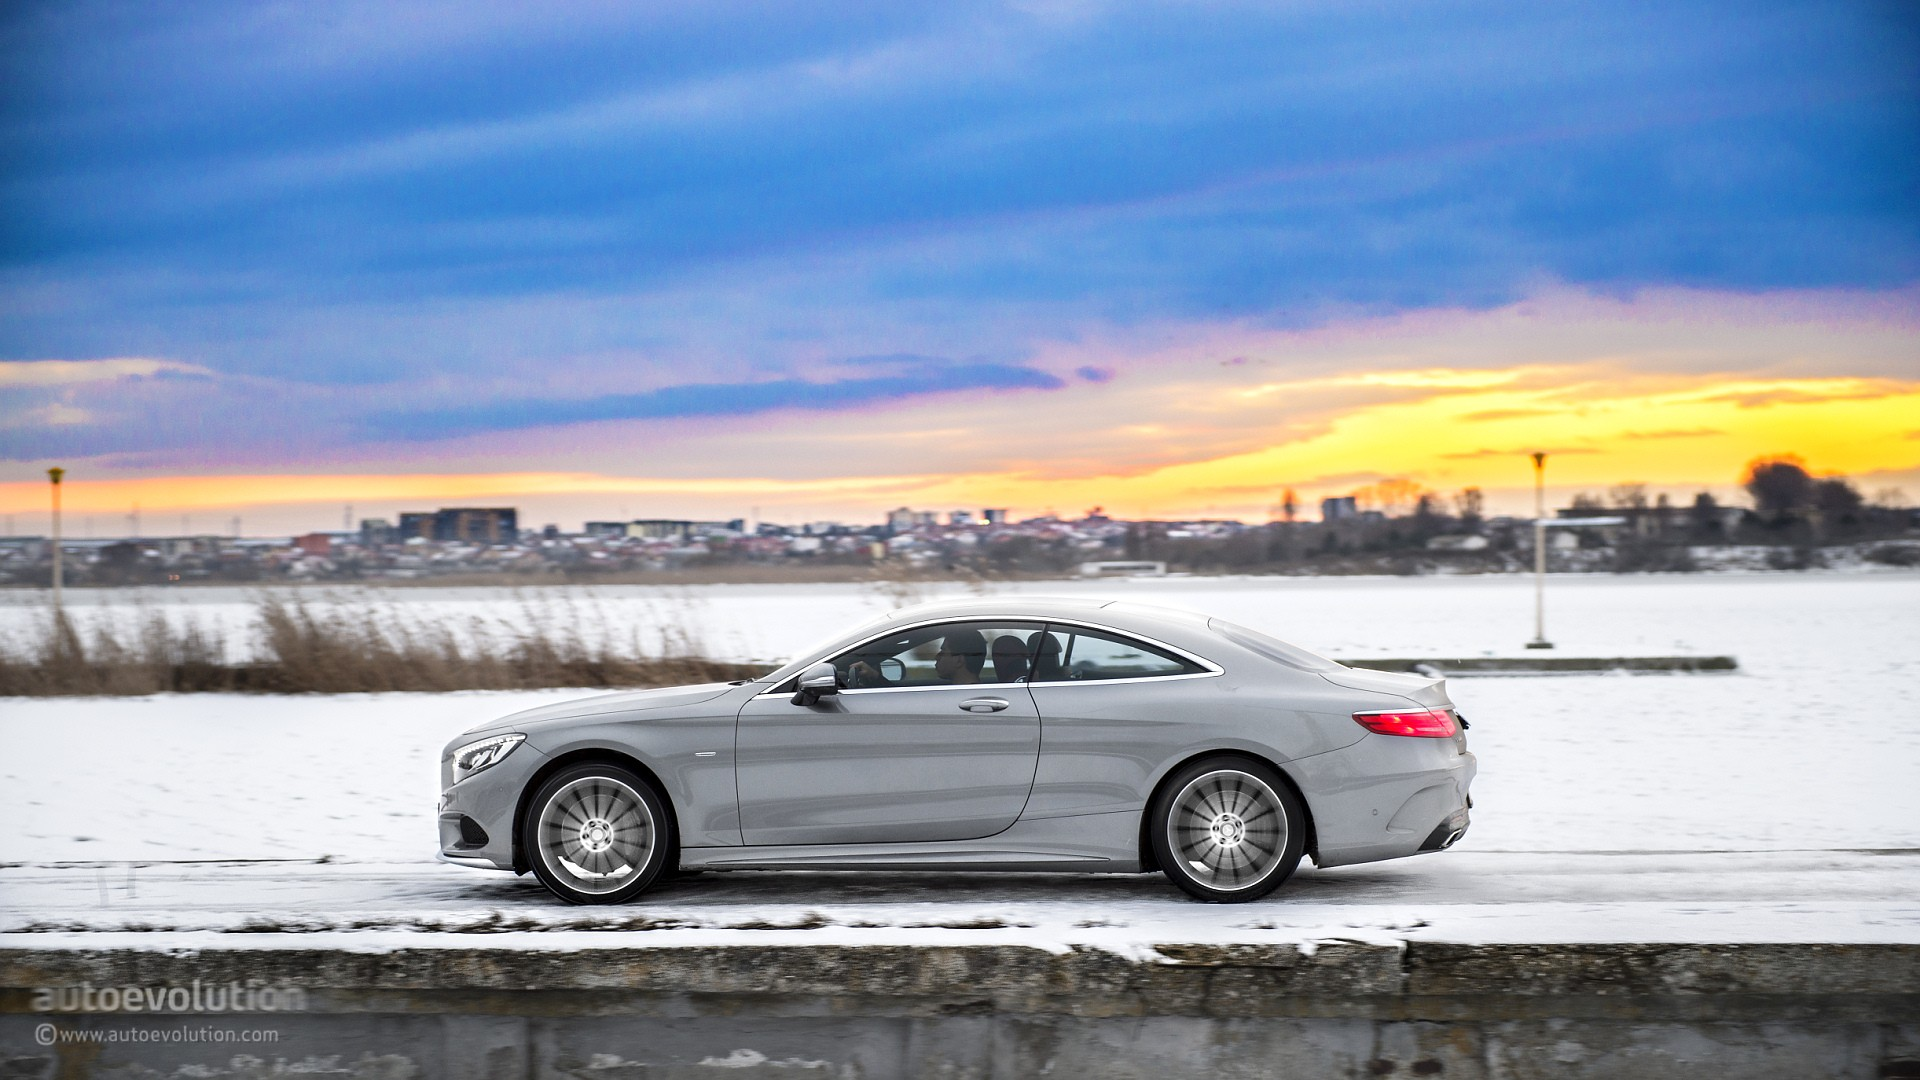 2015 Mercedes-Benz S-Class Coupe HD Wallpapers: If Rodin ...